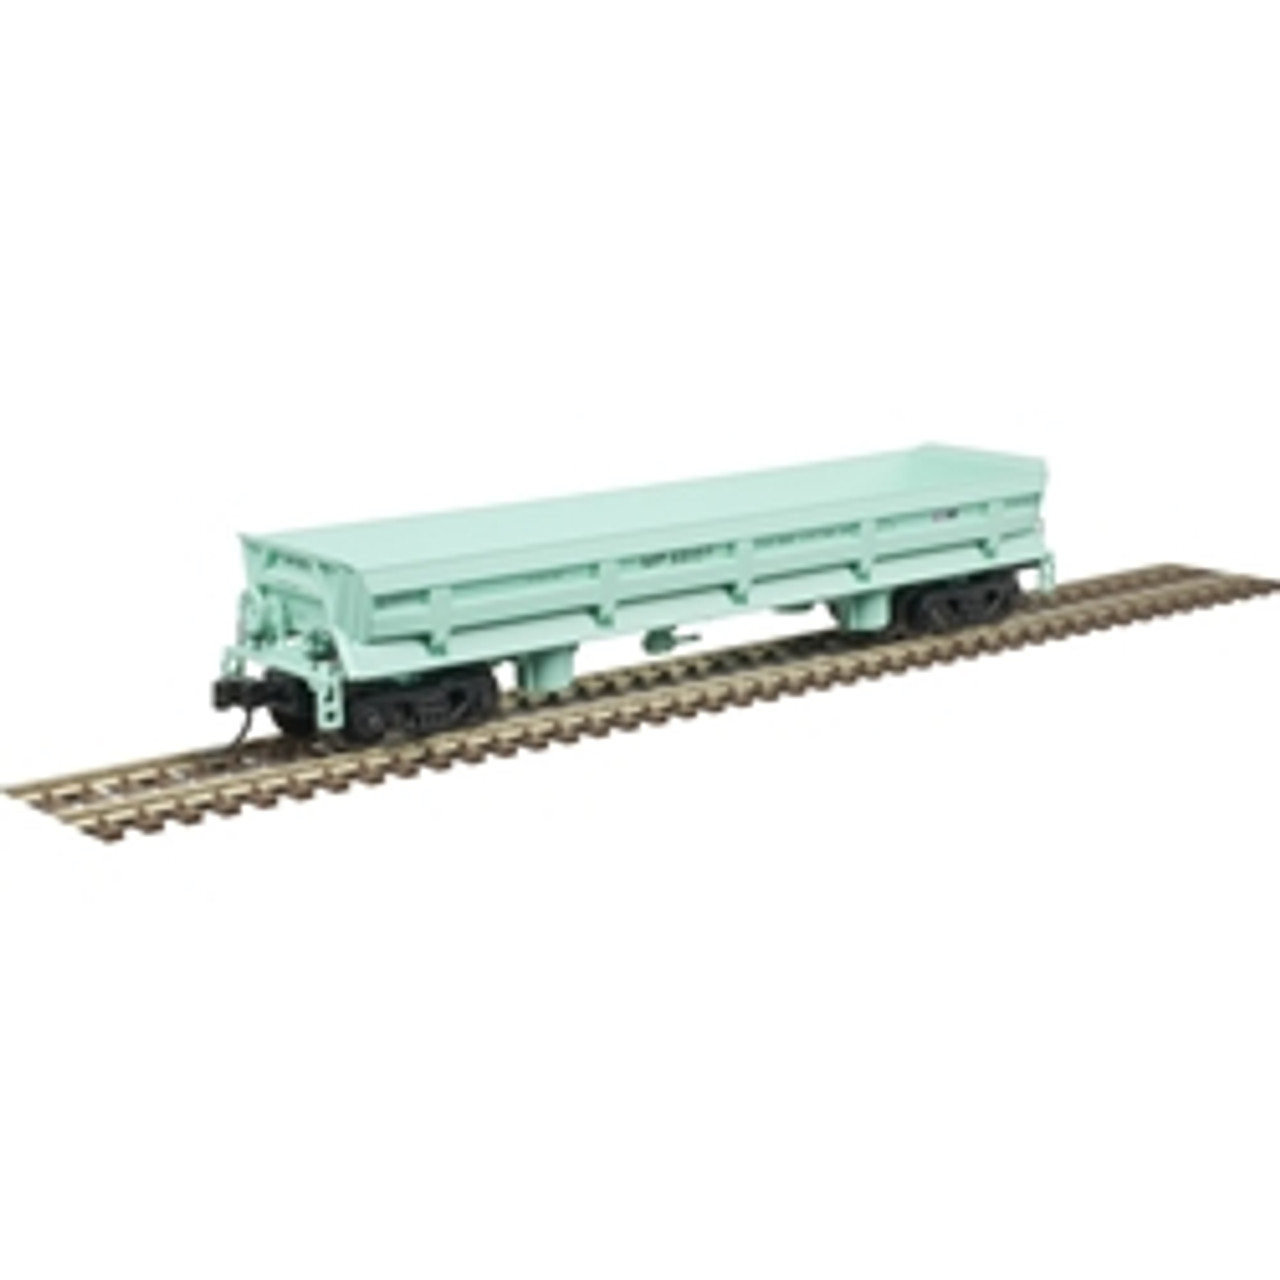 ATLAS 50004586 DIFCO Side Dump Car - MP - Missouri Pacific (UP Shield) #55152 (SCALE=N) Part # 150-50004586